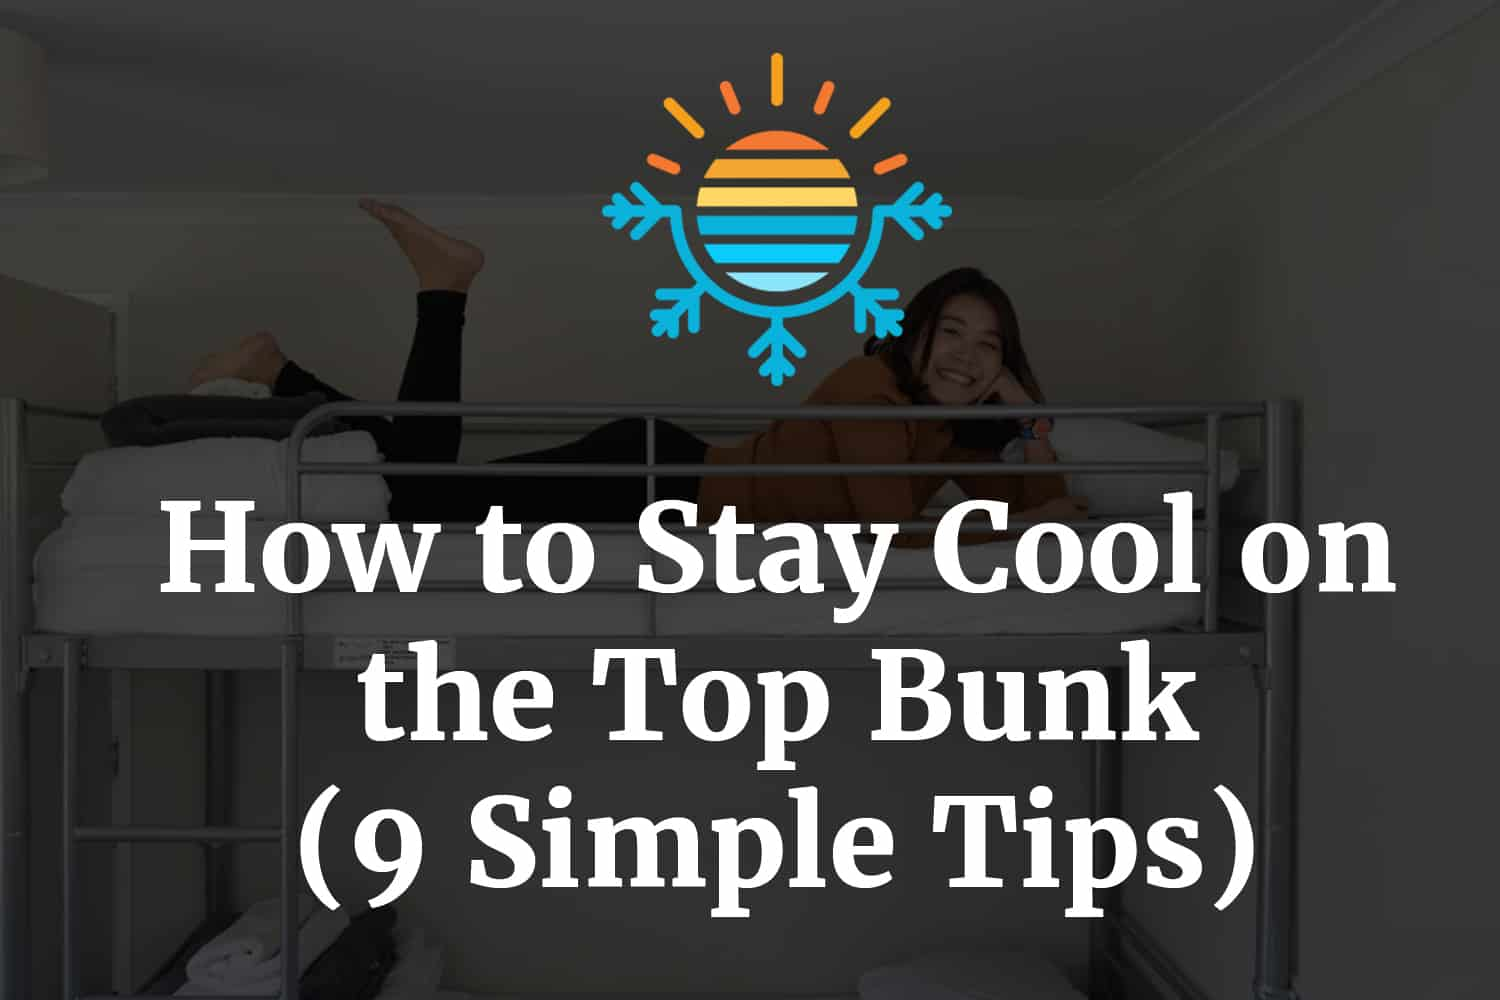 How to Stay Cool on the Top Bunk (9 Simple Tips)